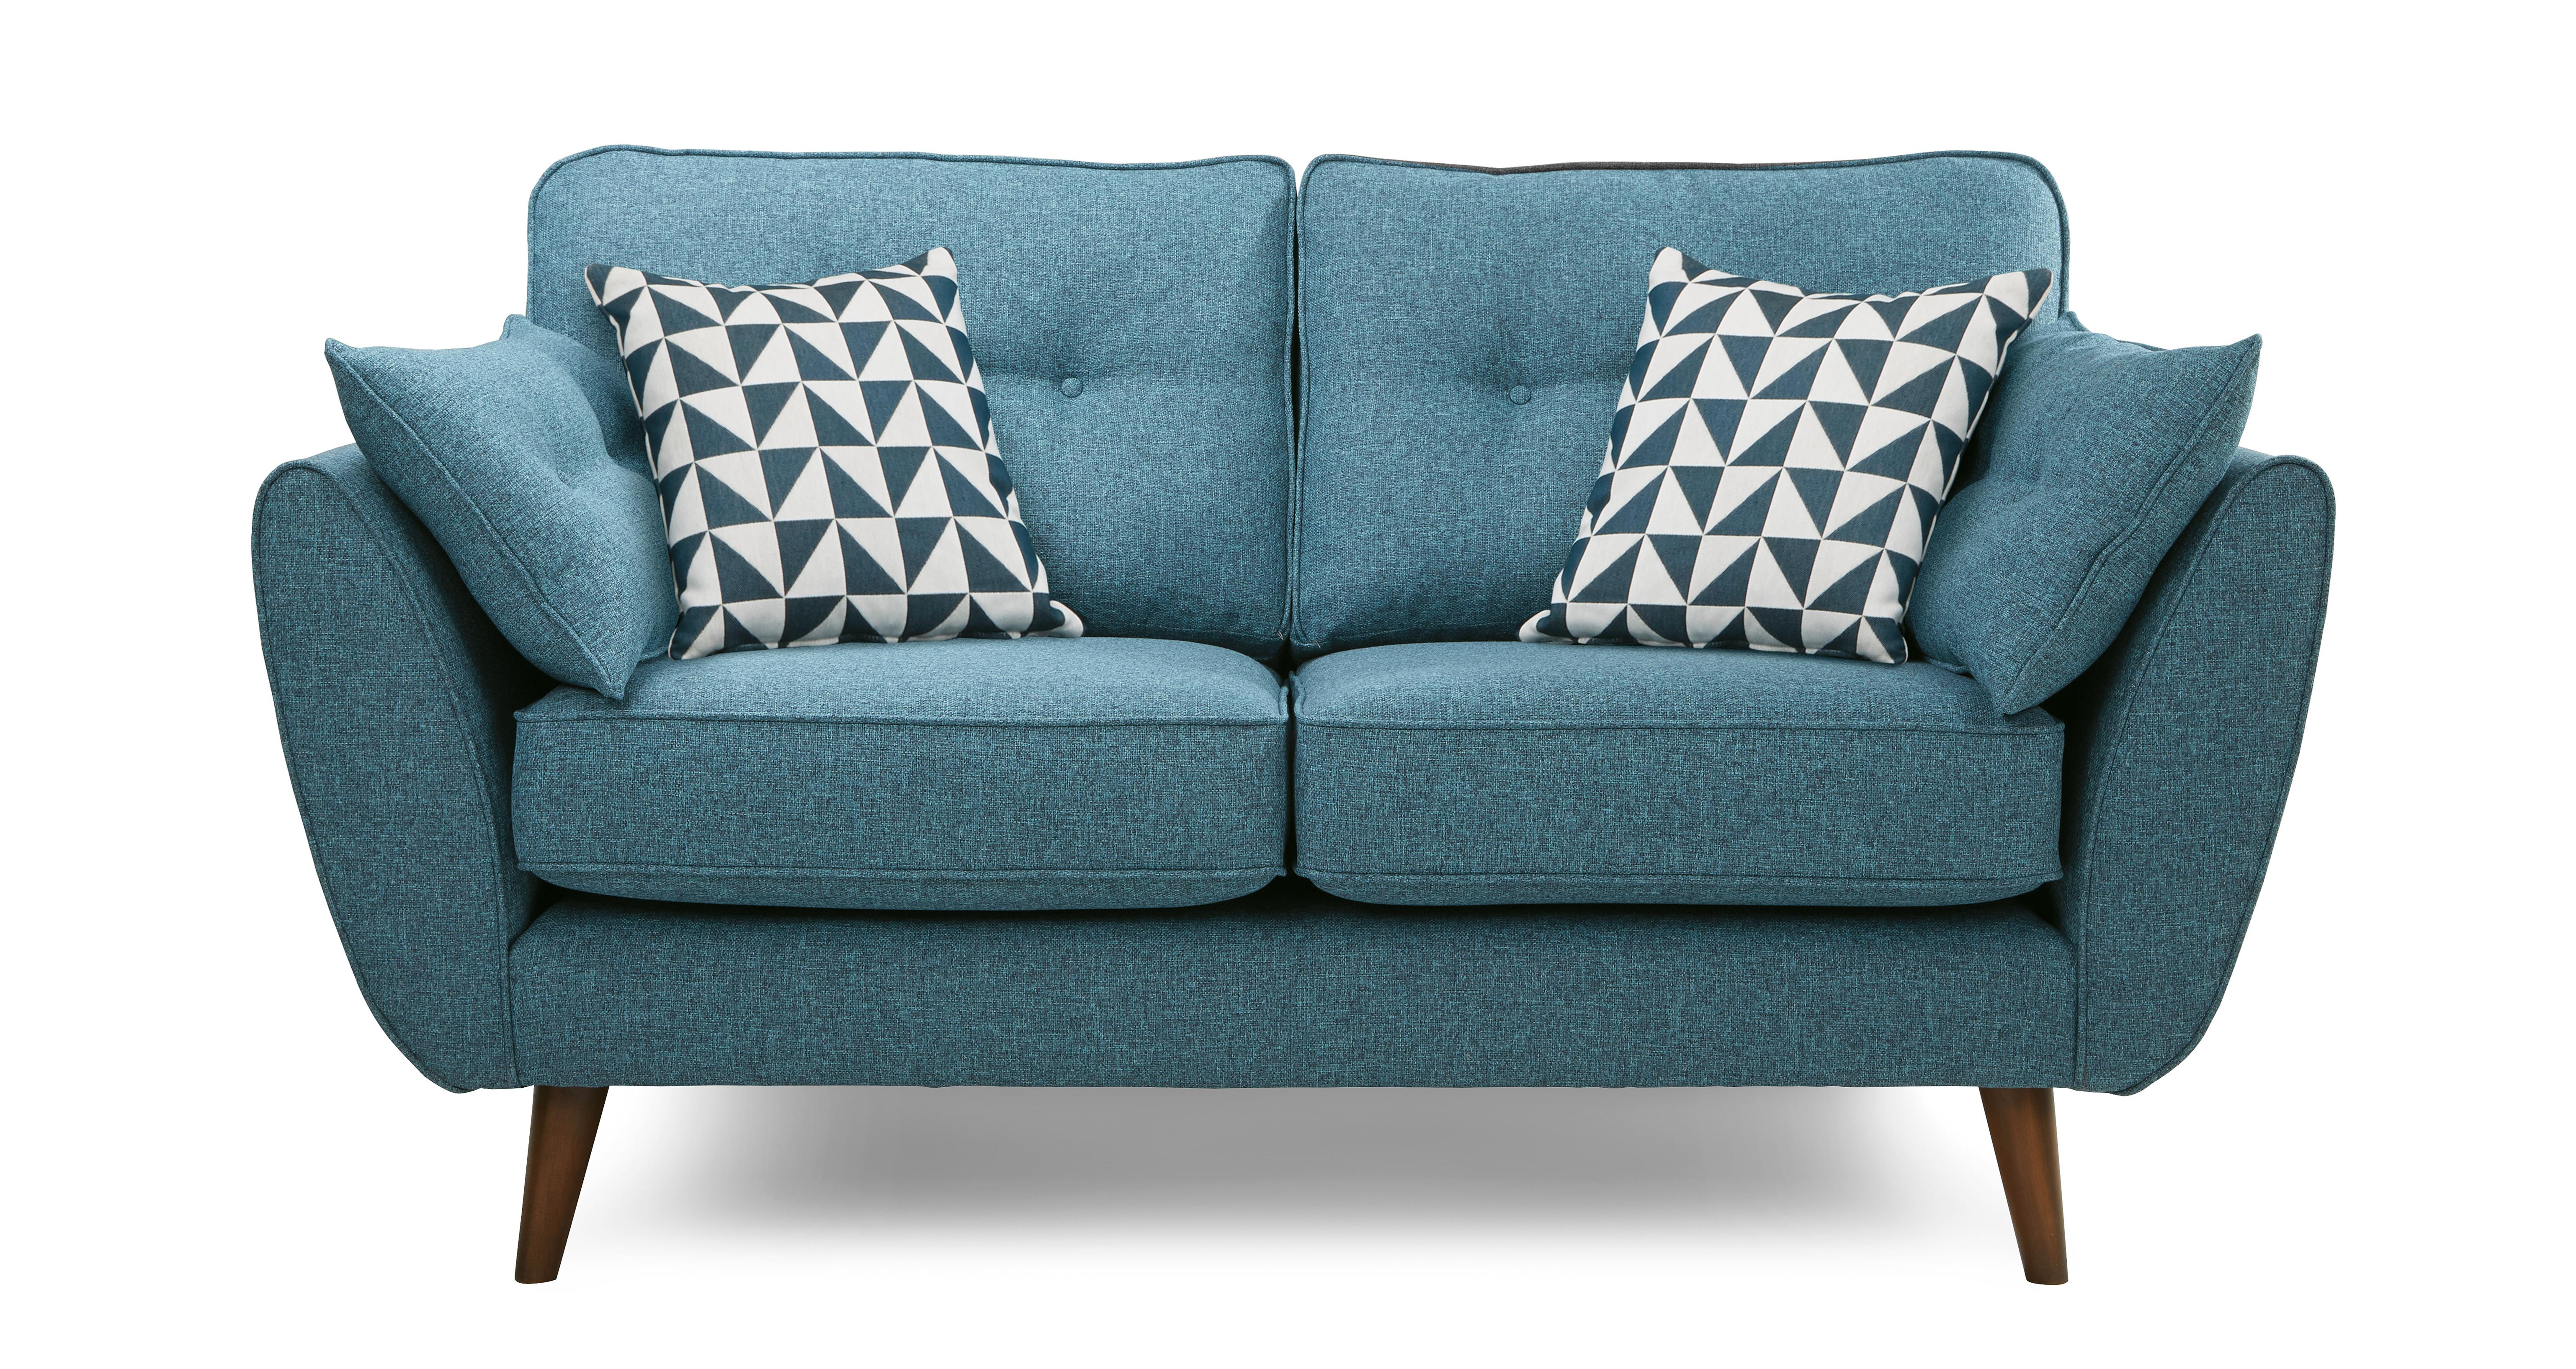 Teal Sofa Dfs Savae Org